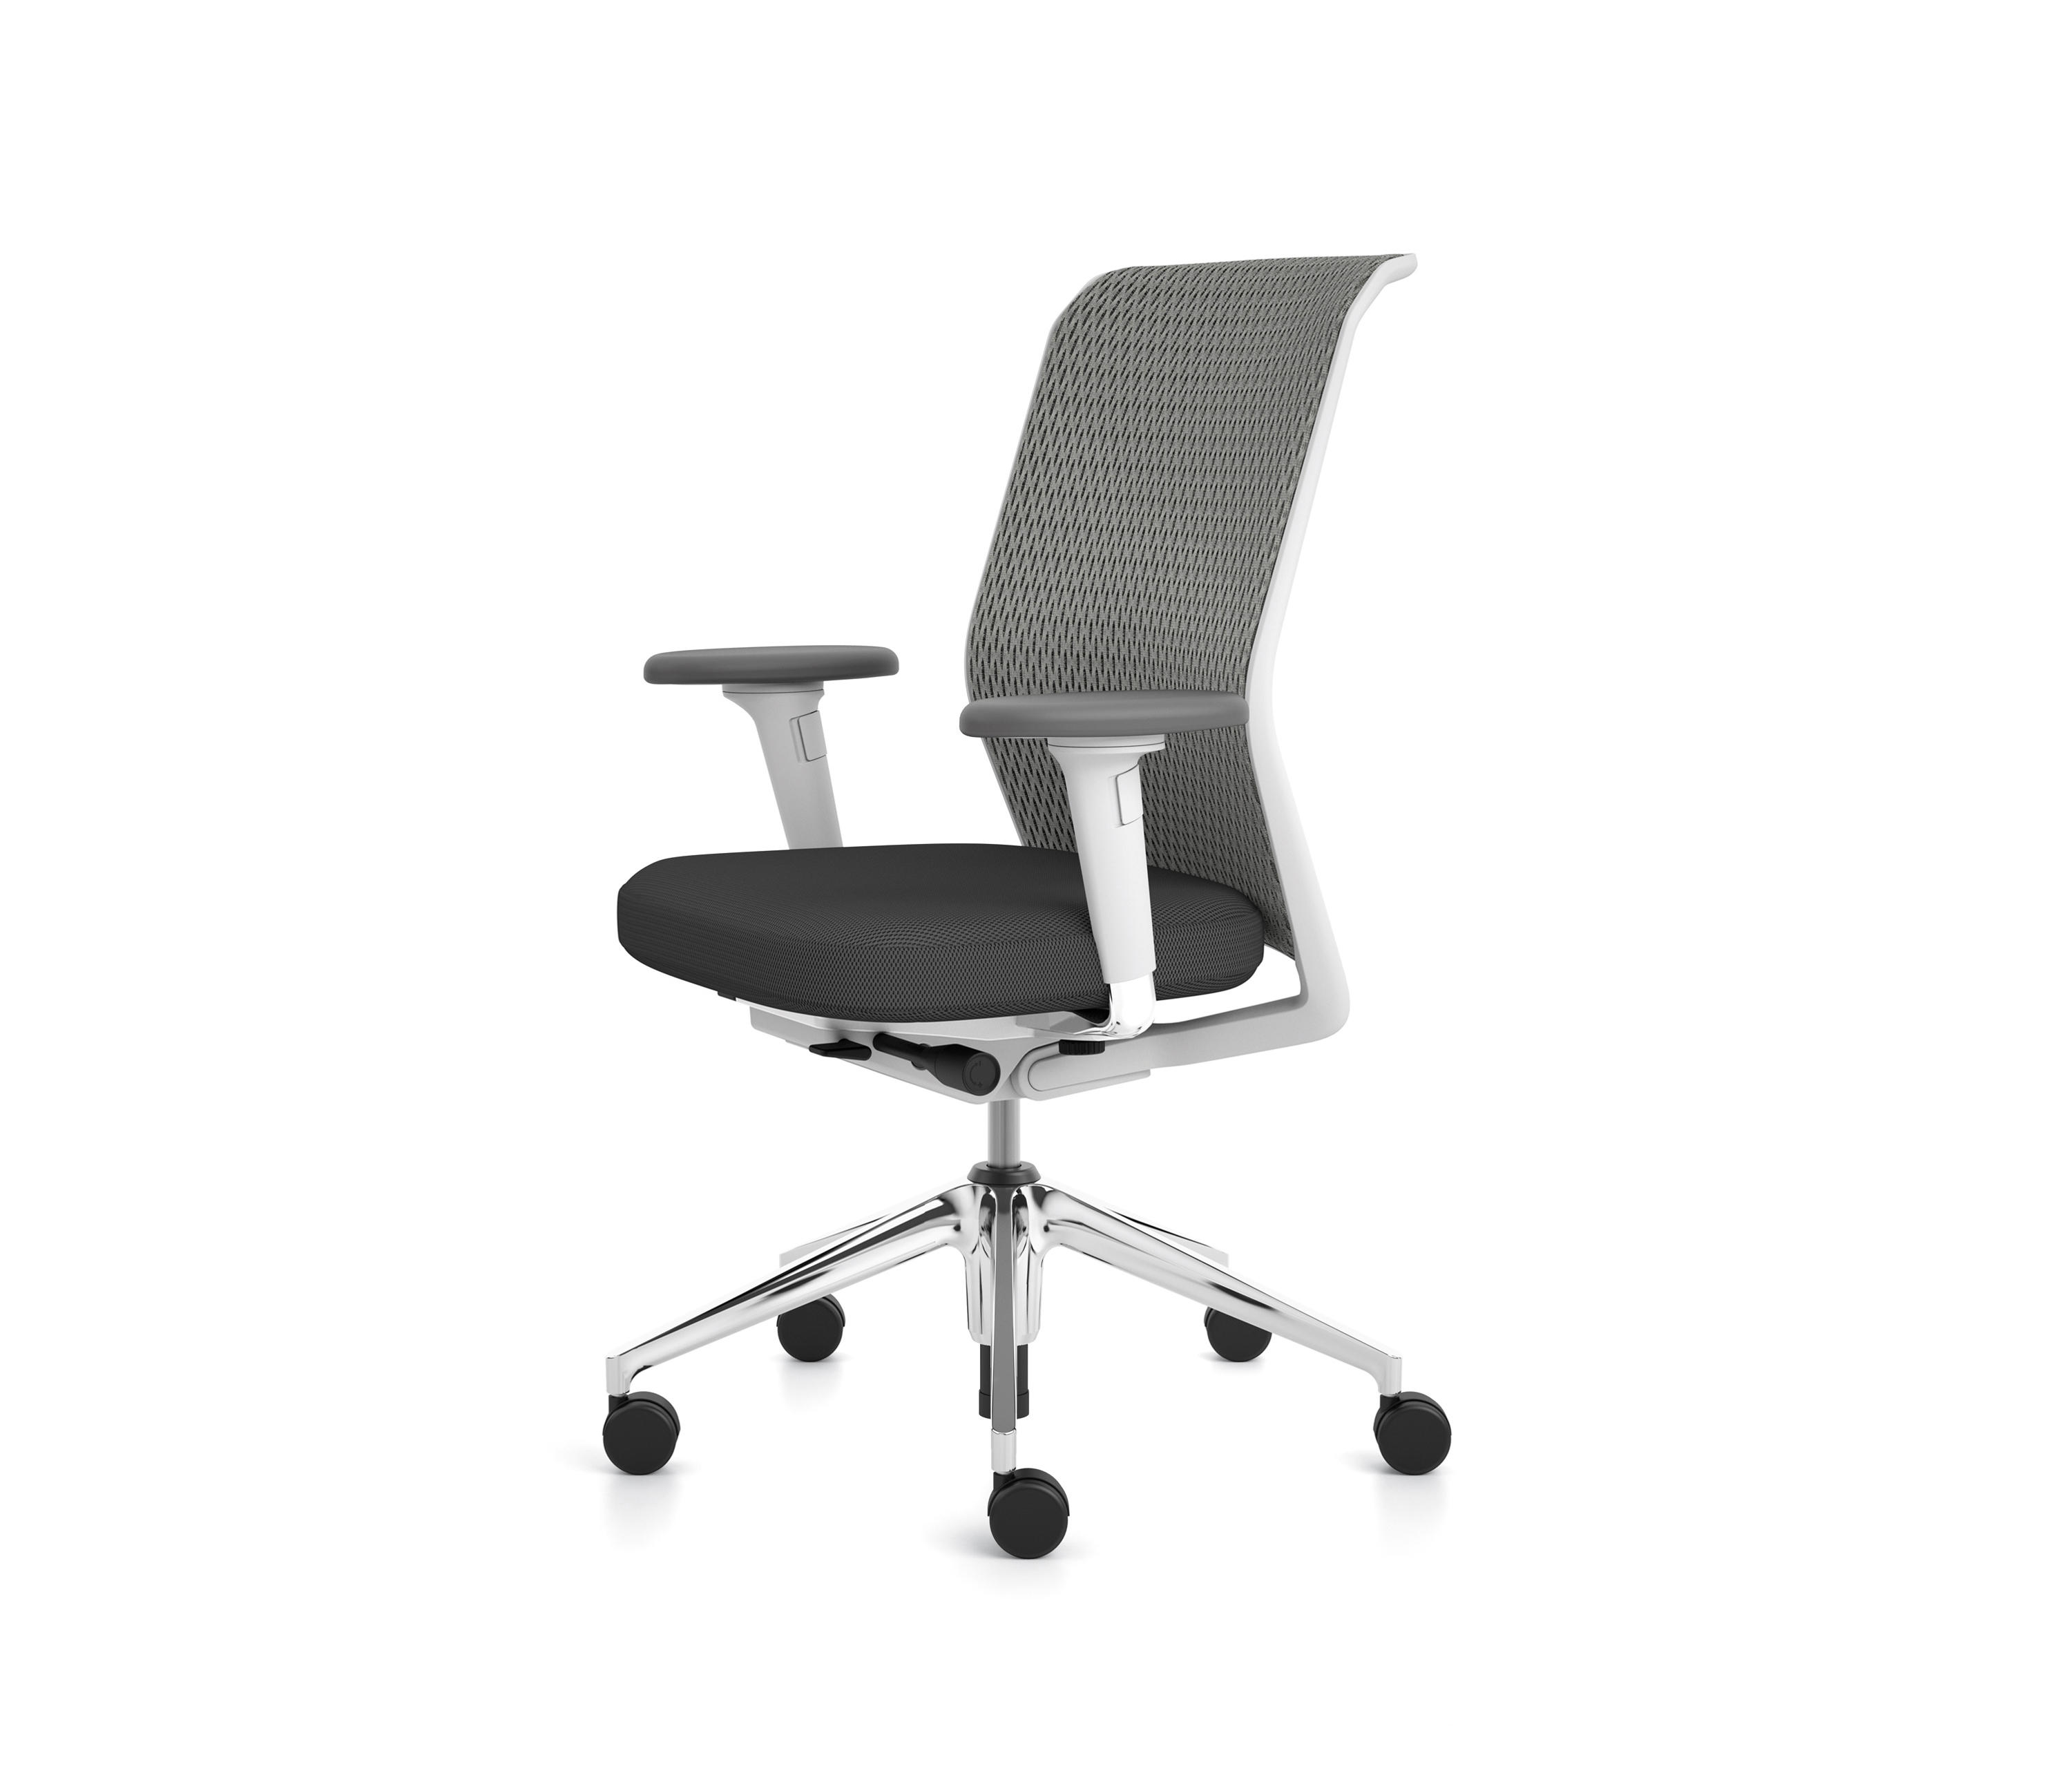 id mesh office chairs from vitra architonic